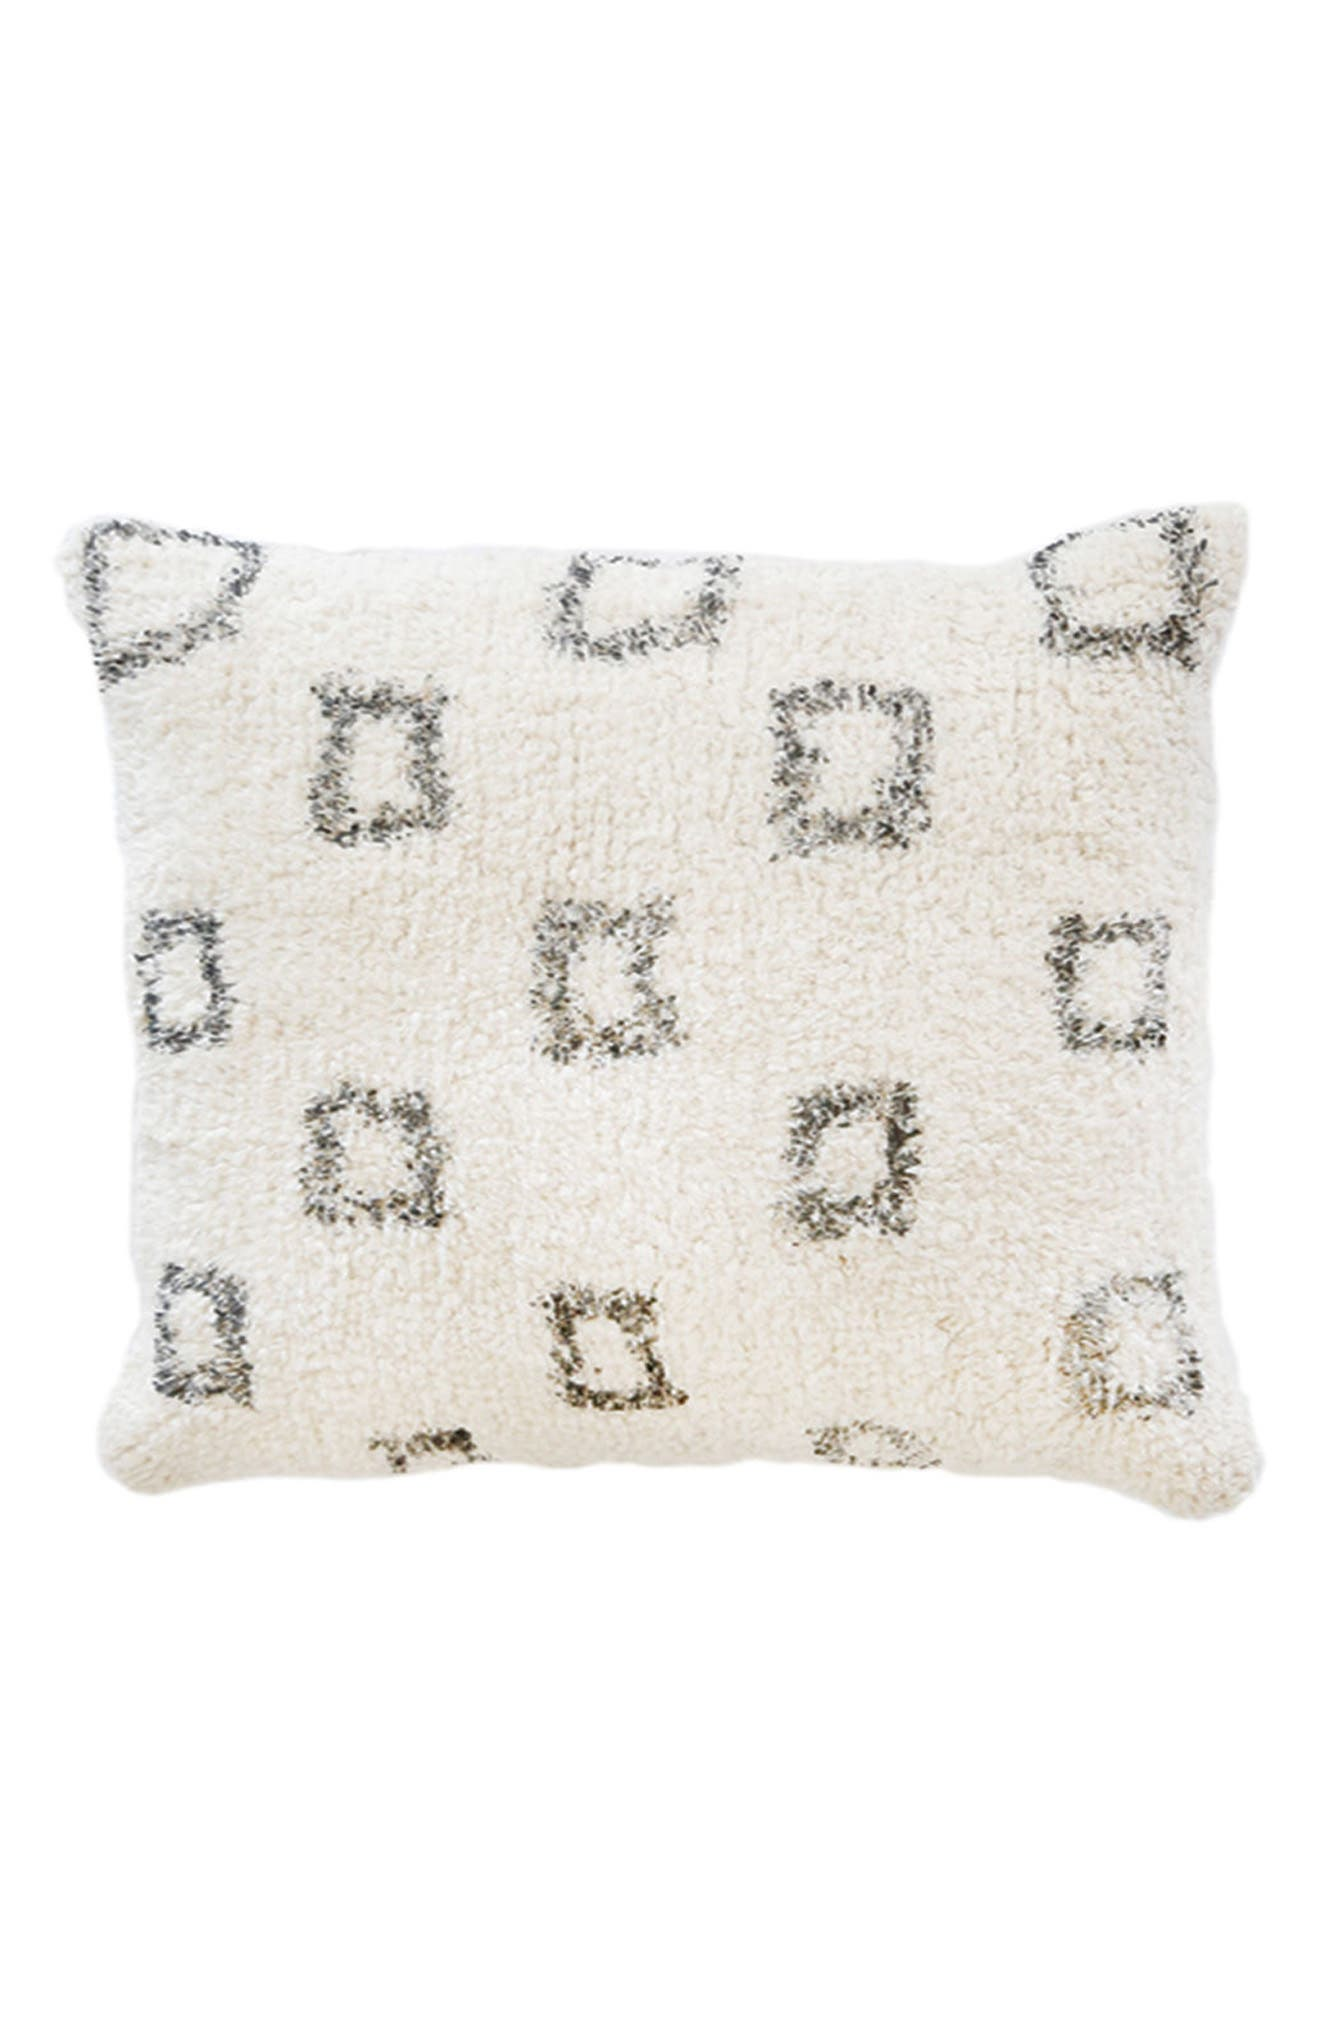 Bowie Big Accent Pillow,                             Main thumbnail 1, color,                             900